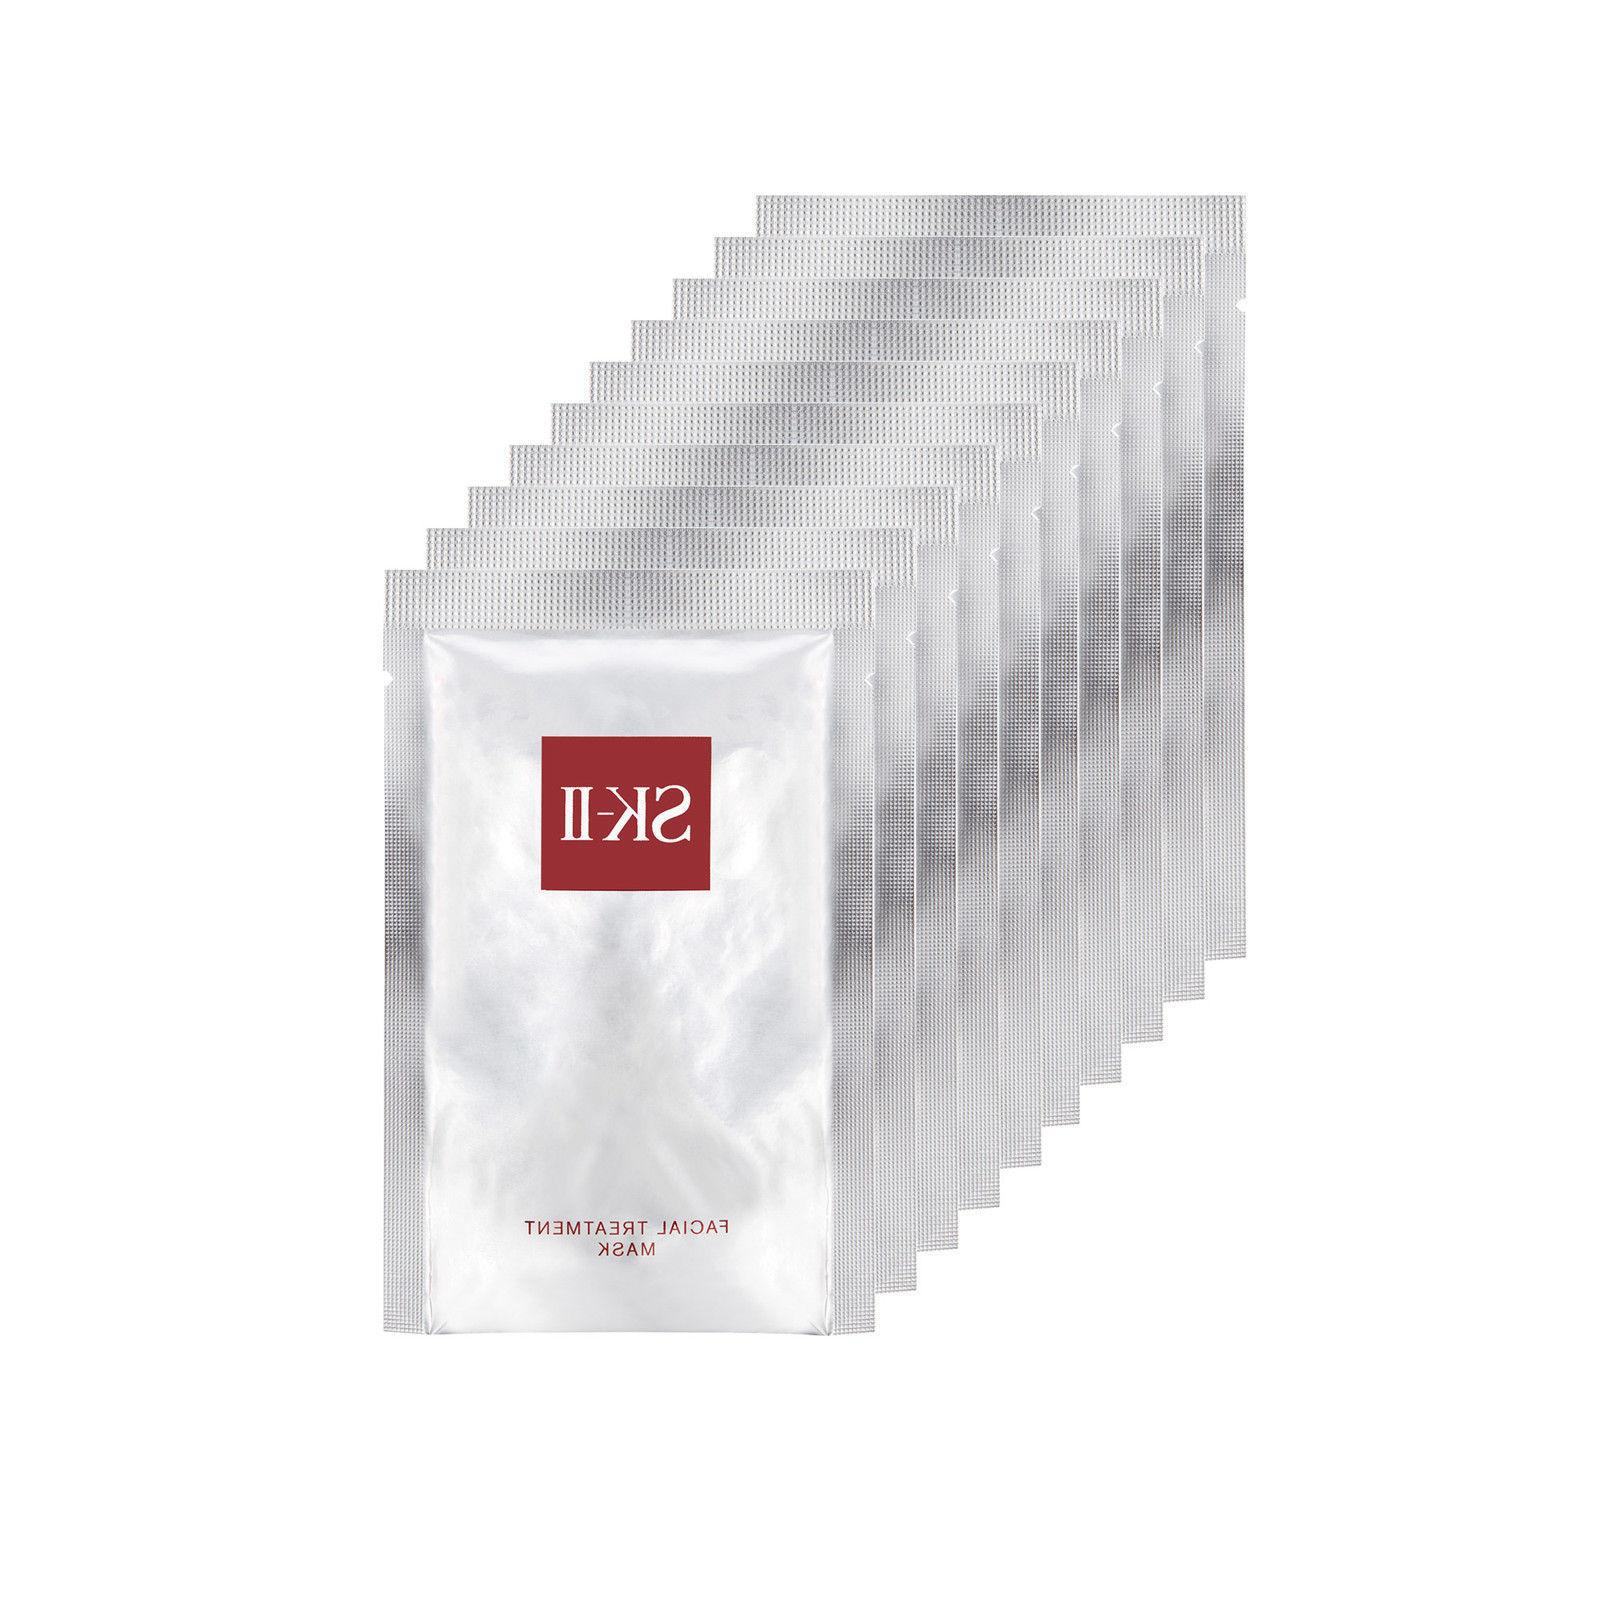 SK-II Facial Treatment Face Mask Pitera AntiAging Moisturizi